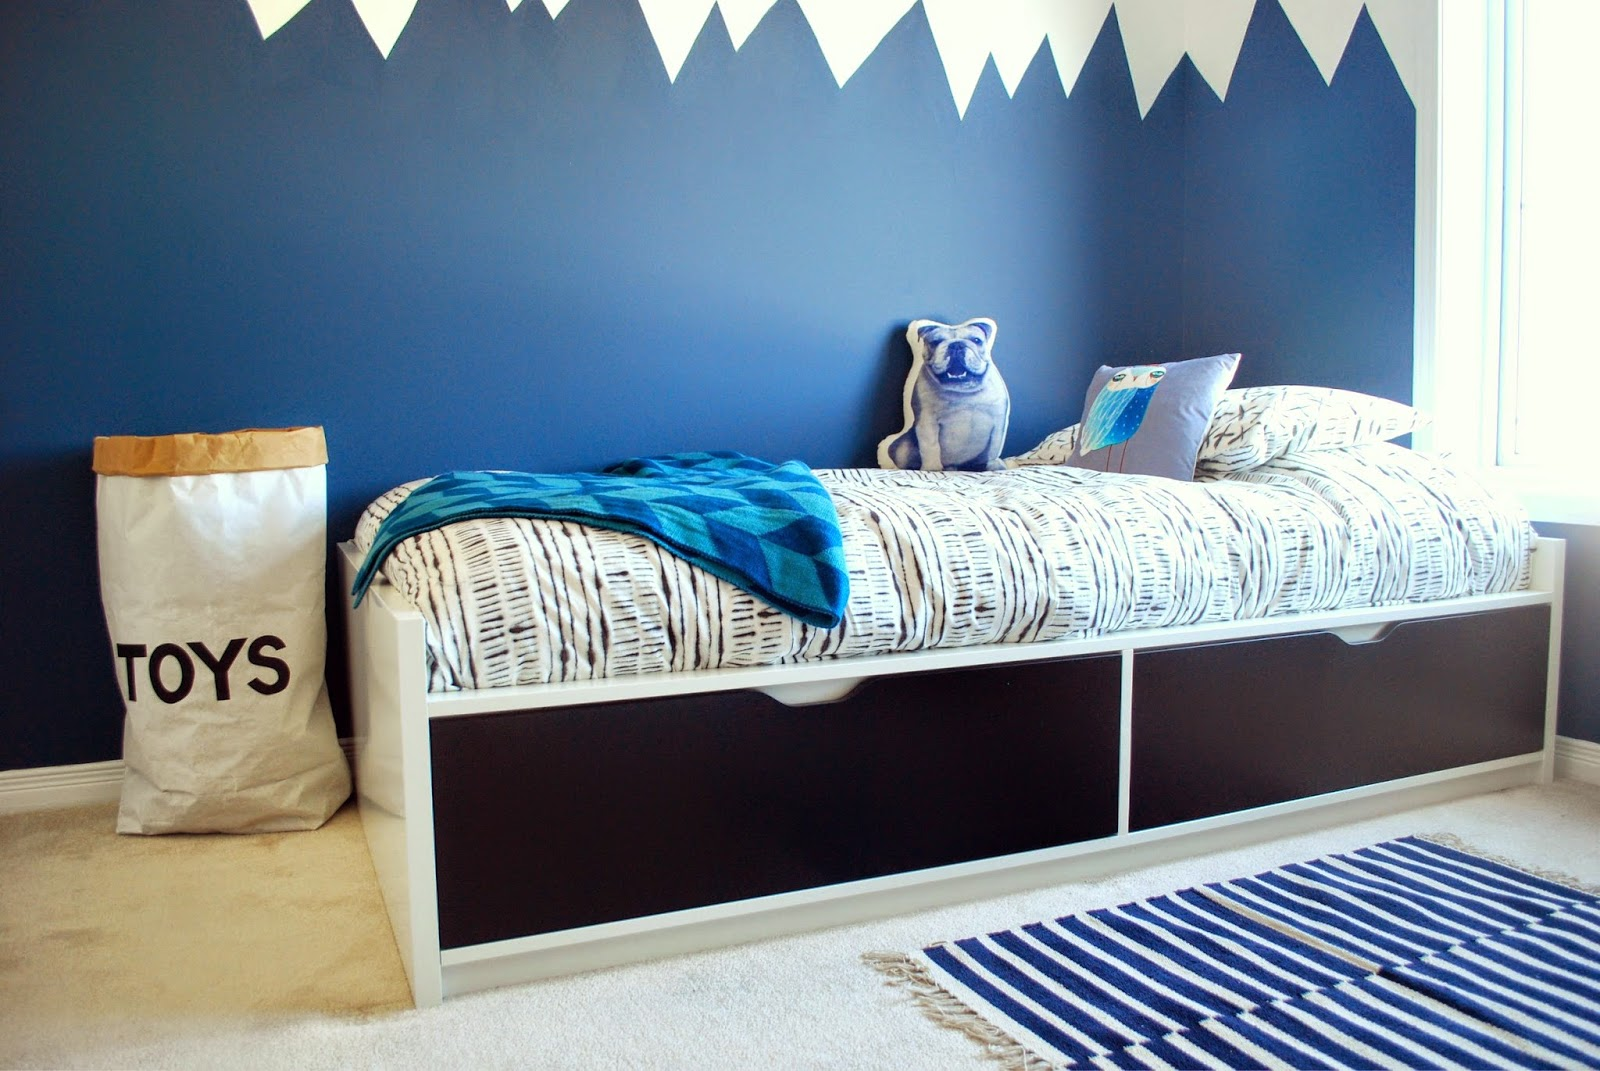 New For The Bedroom For Him The Boo And The Boy The Boys New Room